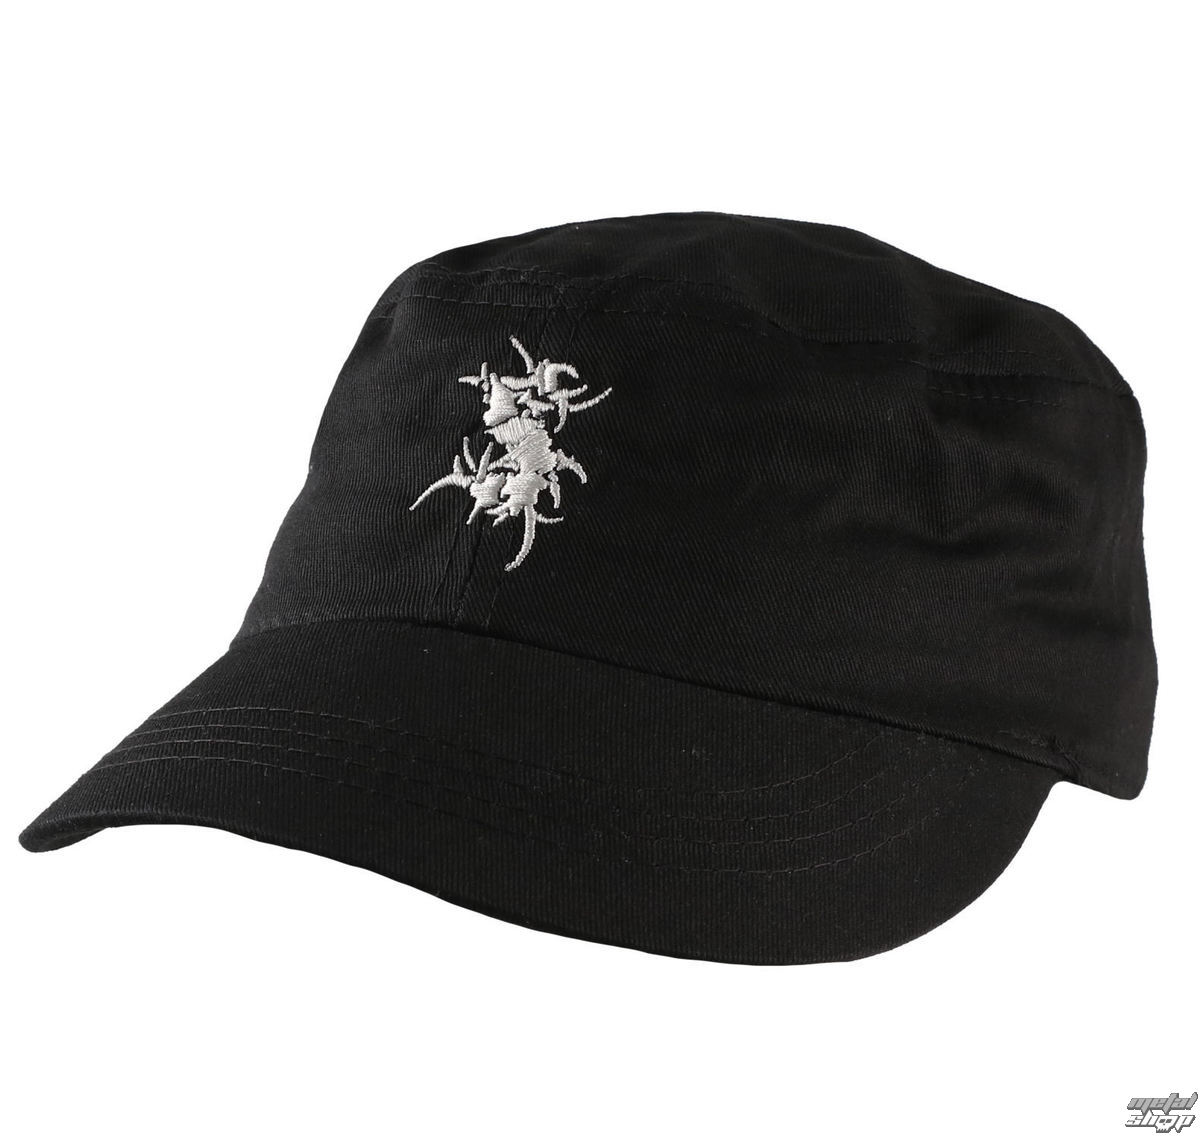 EXHUMED black cap hat NEW embroidered logo death metal